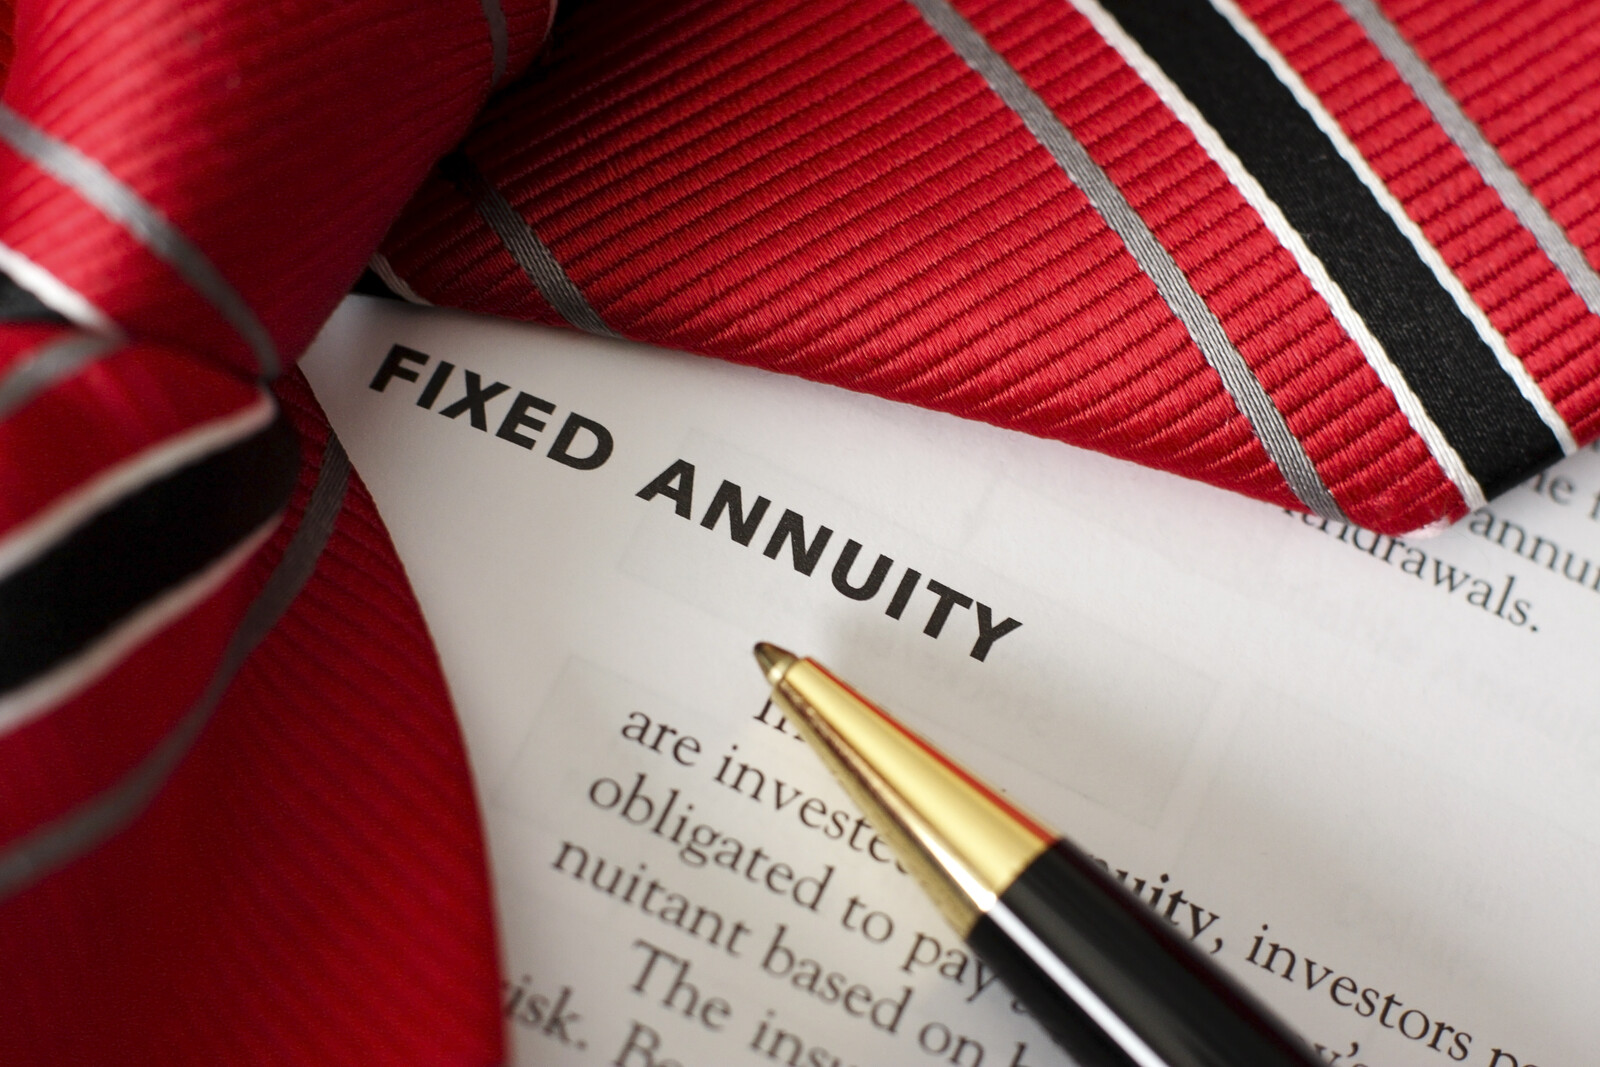 Document that says Fixed annuity with a red neck tie laying over part and a ball point pen pointing at the words